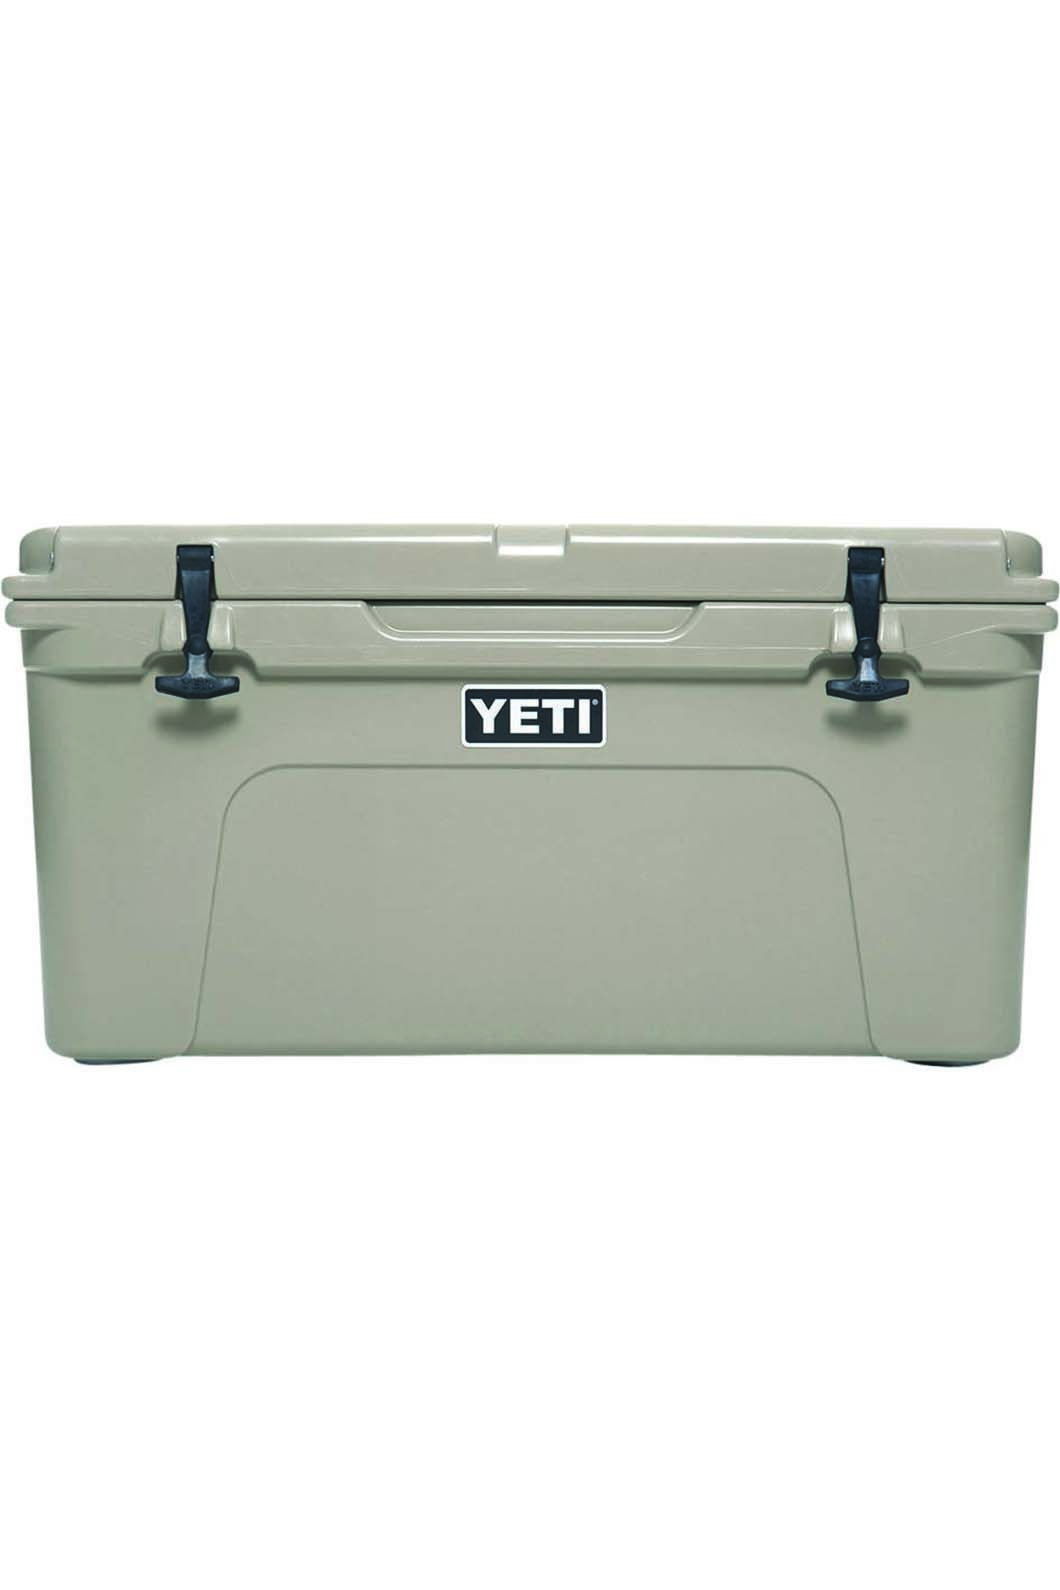 Yeti Tundra 65 Cooler Tan 65L, None, hi-res